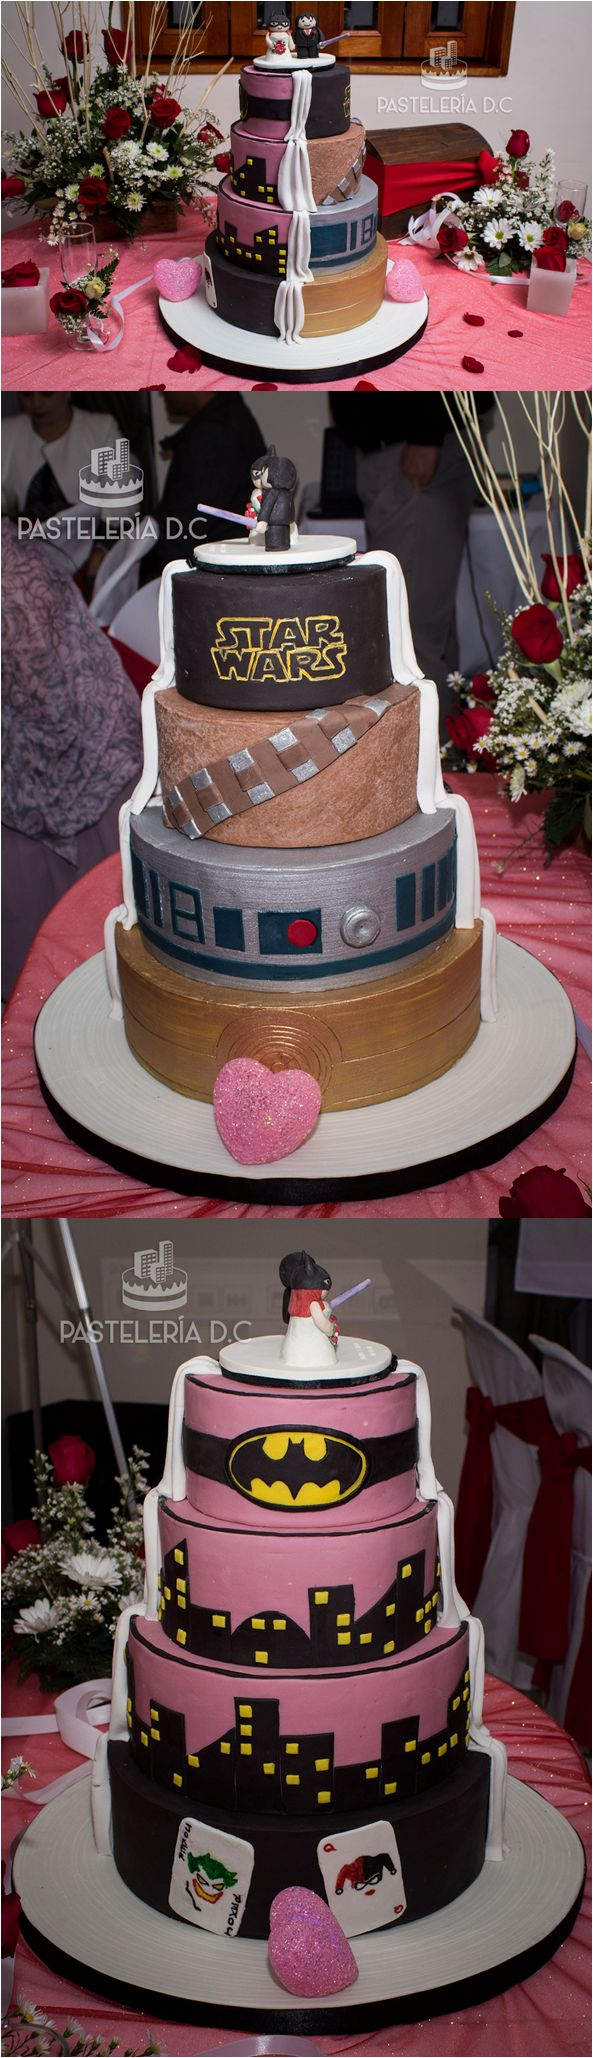 Torta de matrimonio mitad Batman mitad Star Wars. Cubierta de una mezcla de fondant con chocolate para modelar / Half and half wedding cake. The two themes were Batman and Star Wars.